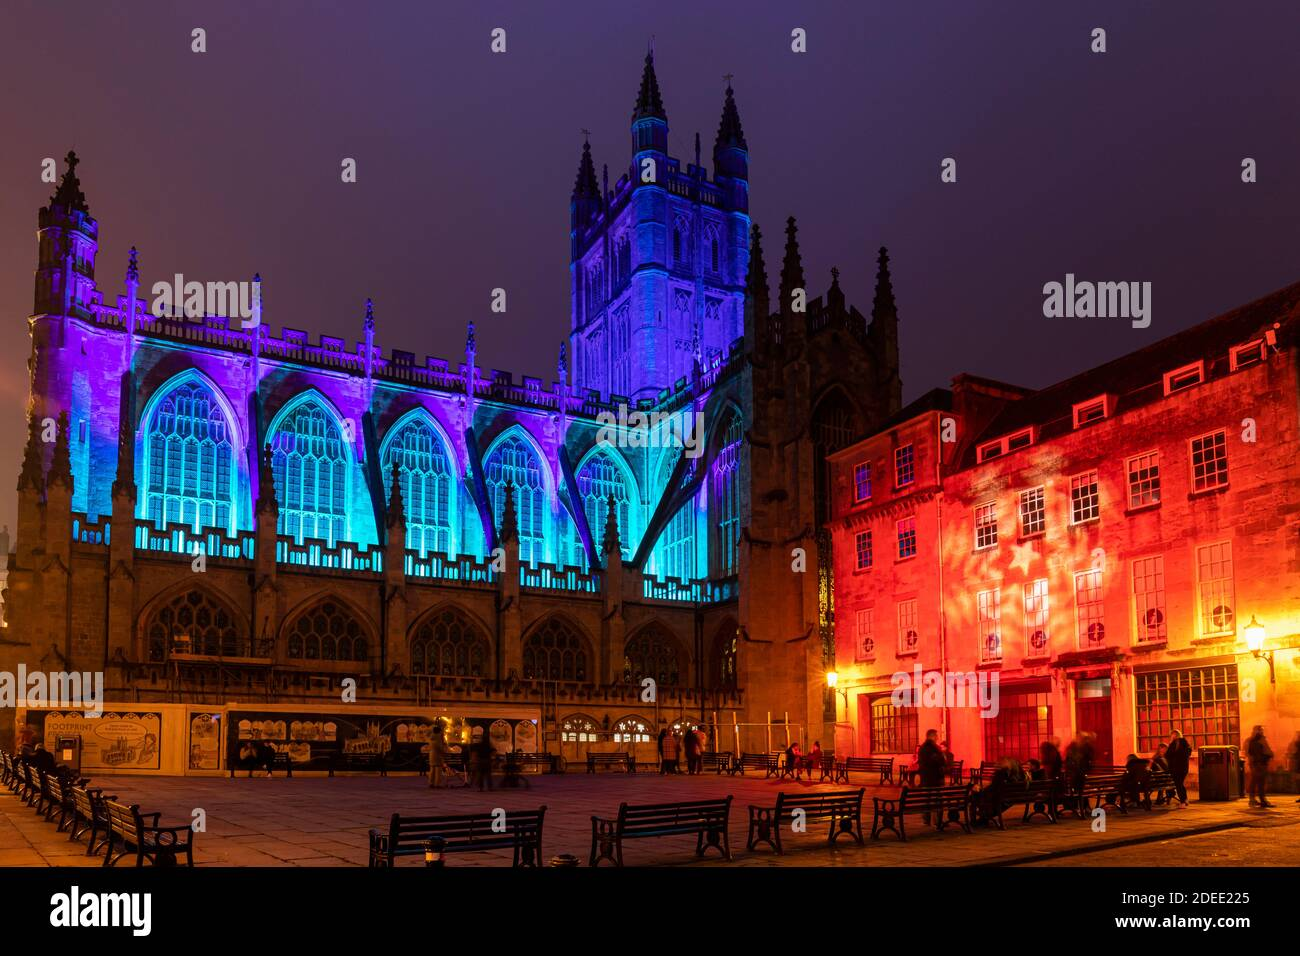 Bath Abbey lit with colourful illuminations and is part of the 2020 Christmas Light Trail in Bath City Centre, Somerset, England, UK Stock Photo